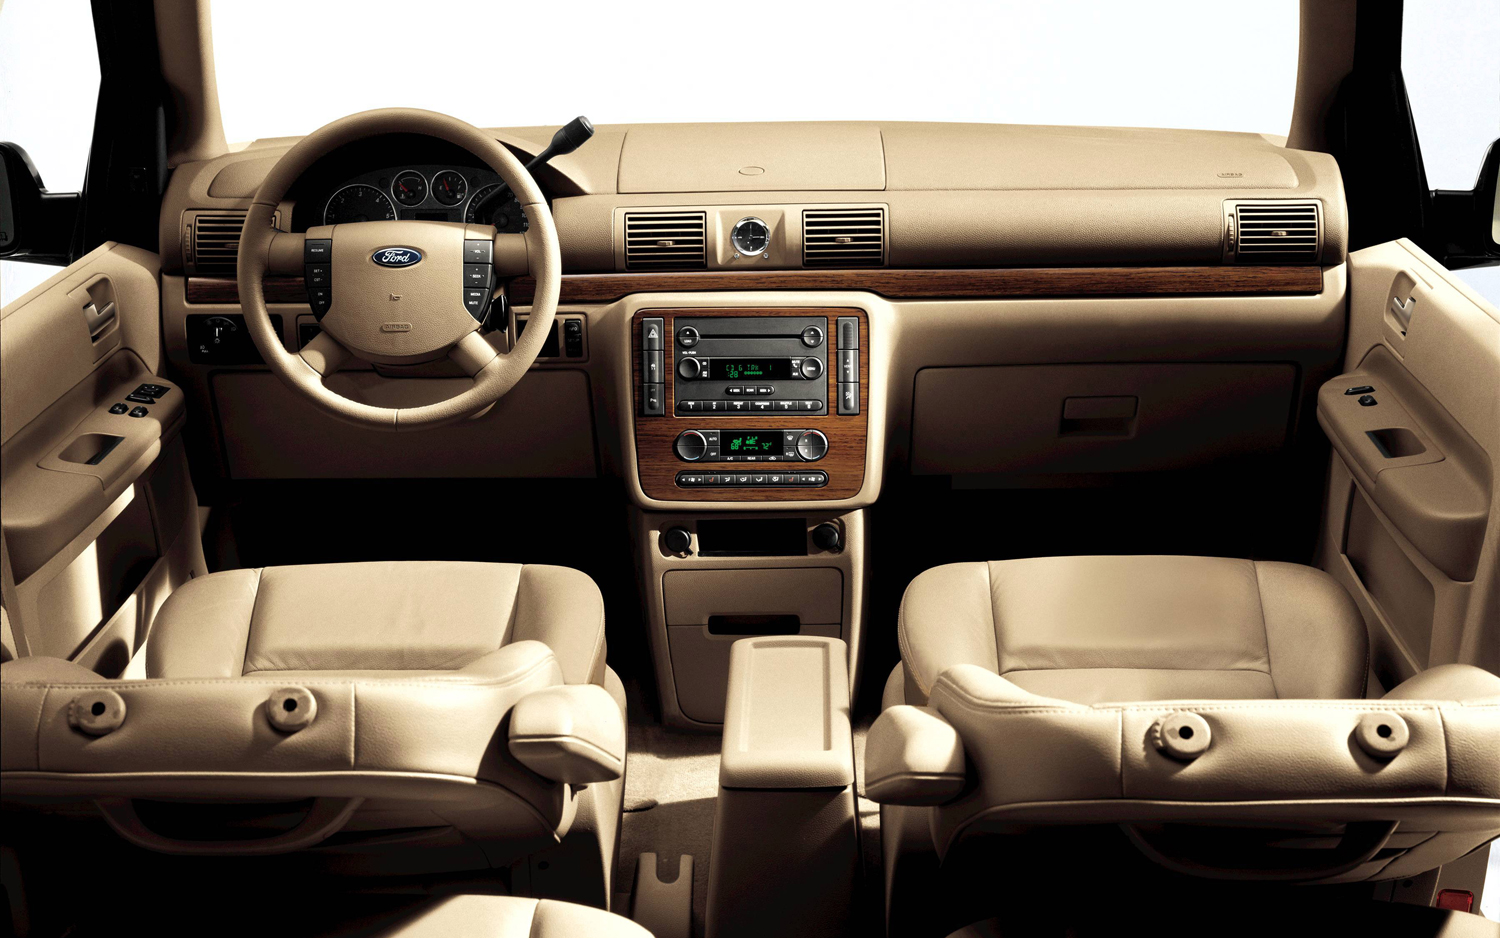 2001 2002 ford escape and mercury monterey 2004 2005 freestar recalled photo image gallery truck trend